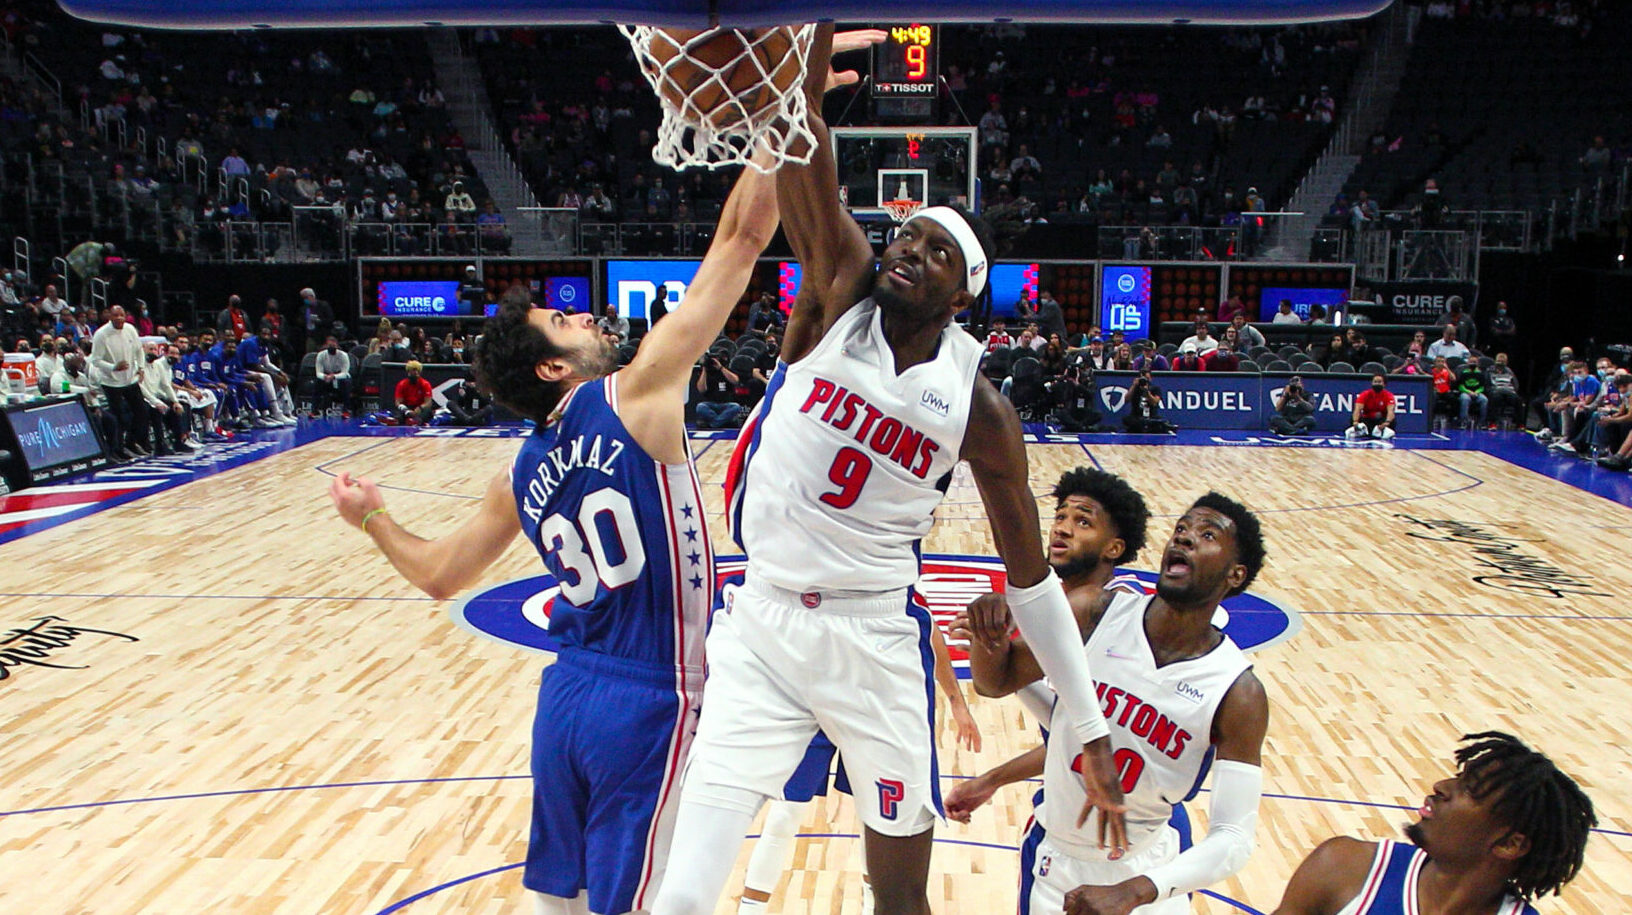 Jerami Grant posterizes defender with one-handed slam